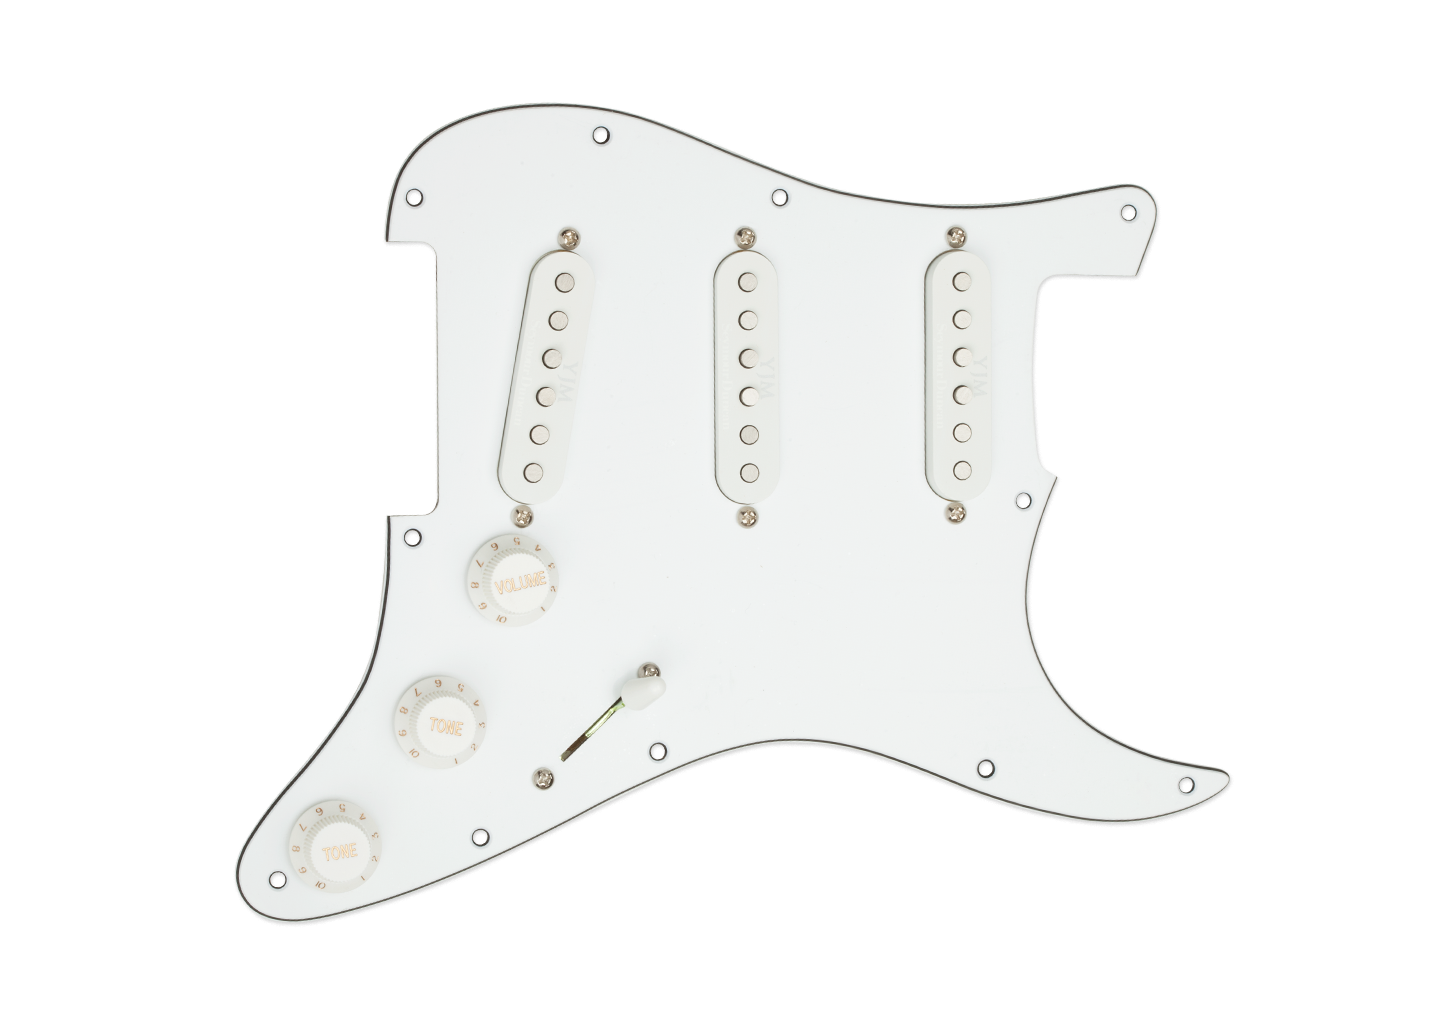 Seymour Duncan Yngwie Malmsteen YJM Fury Loaded Pickguard White